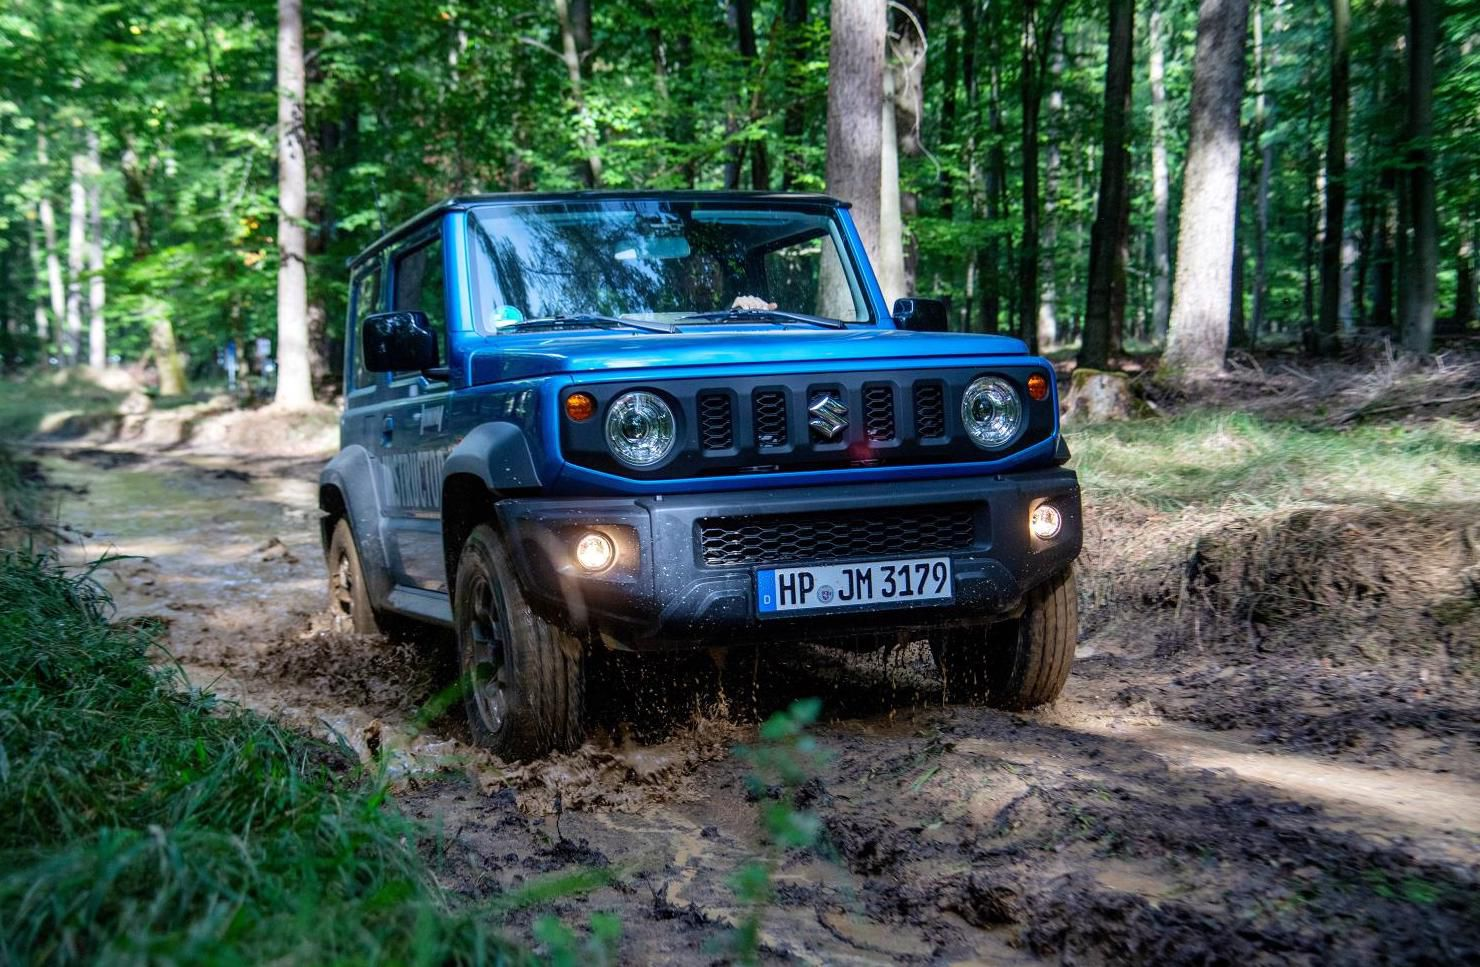 Suzuki Jimny driving through mud